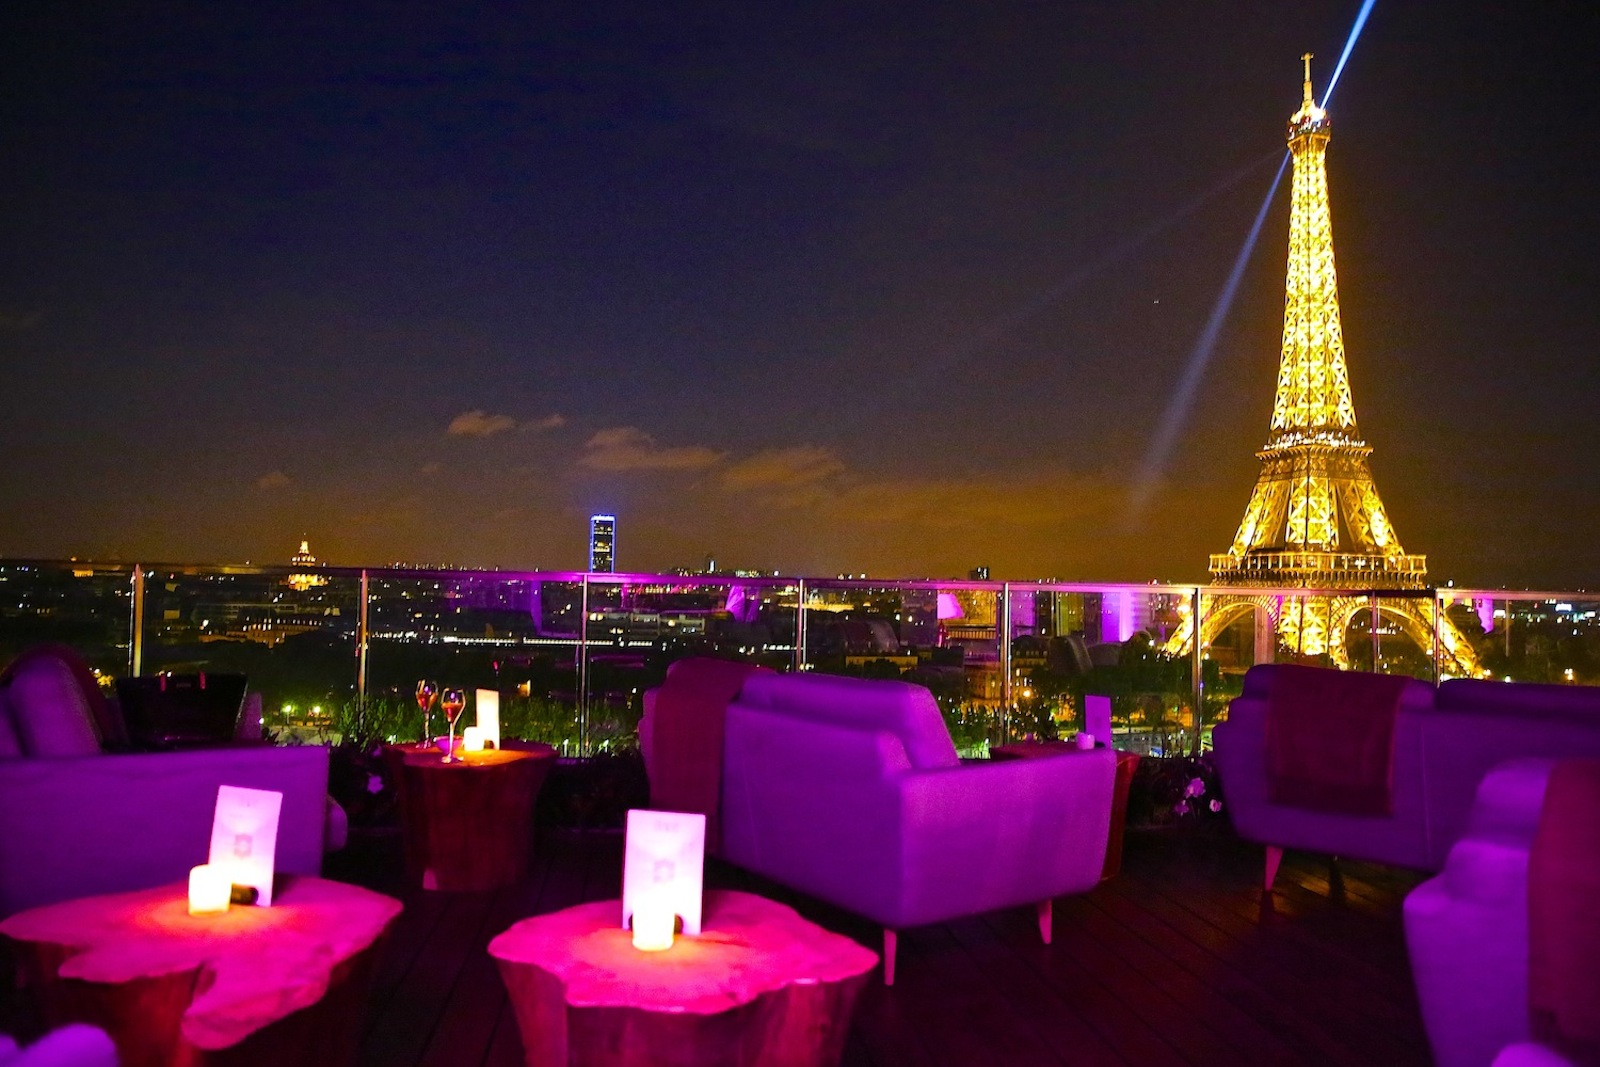 Le Meilleur The 15 Most Romantic Spots For Happy Hour With A View Ce Mois Ci